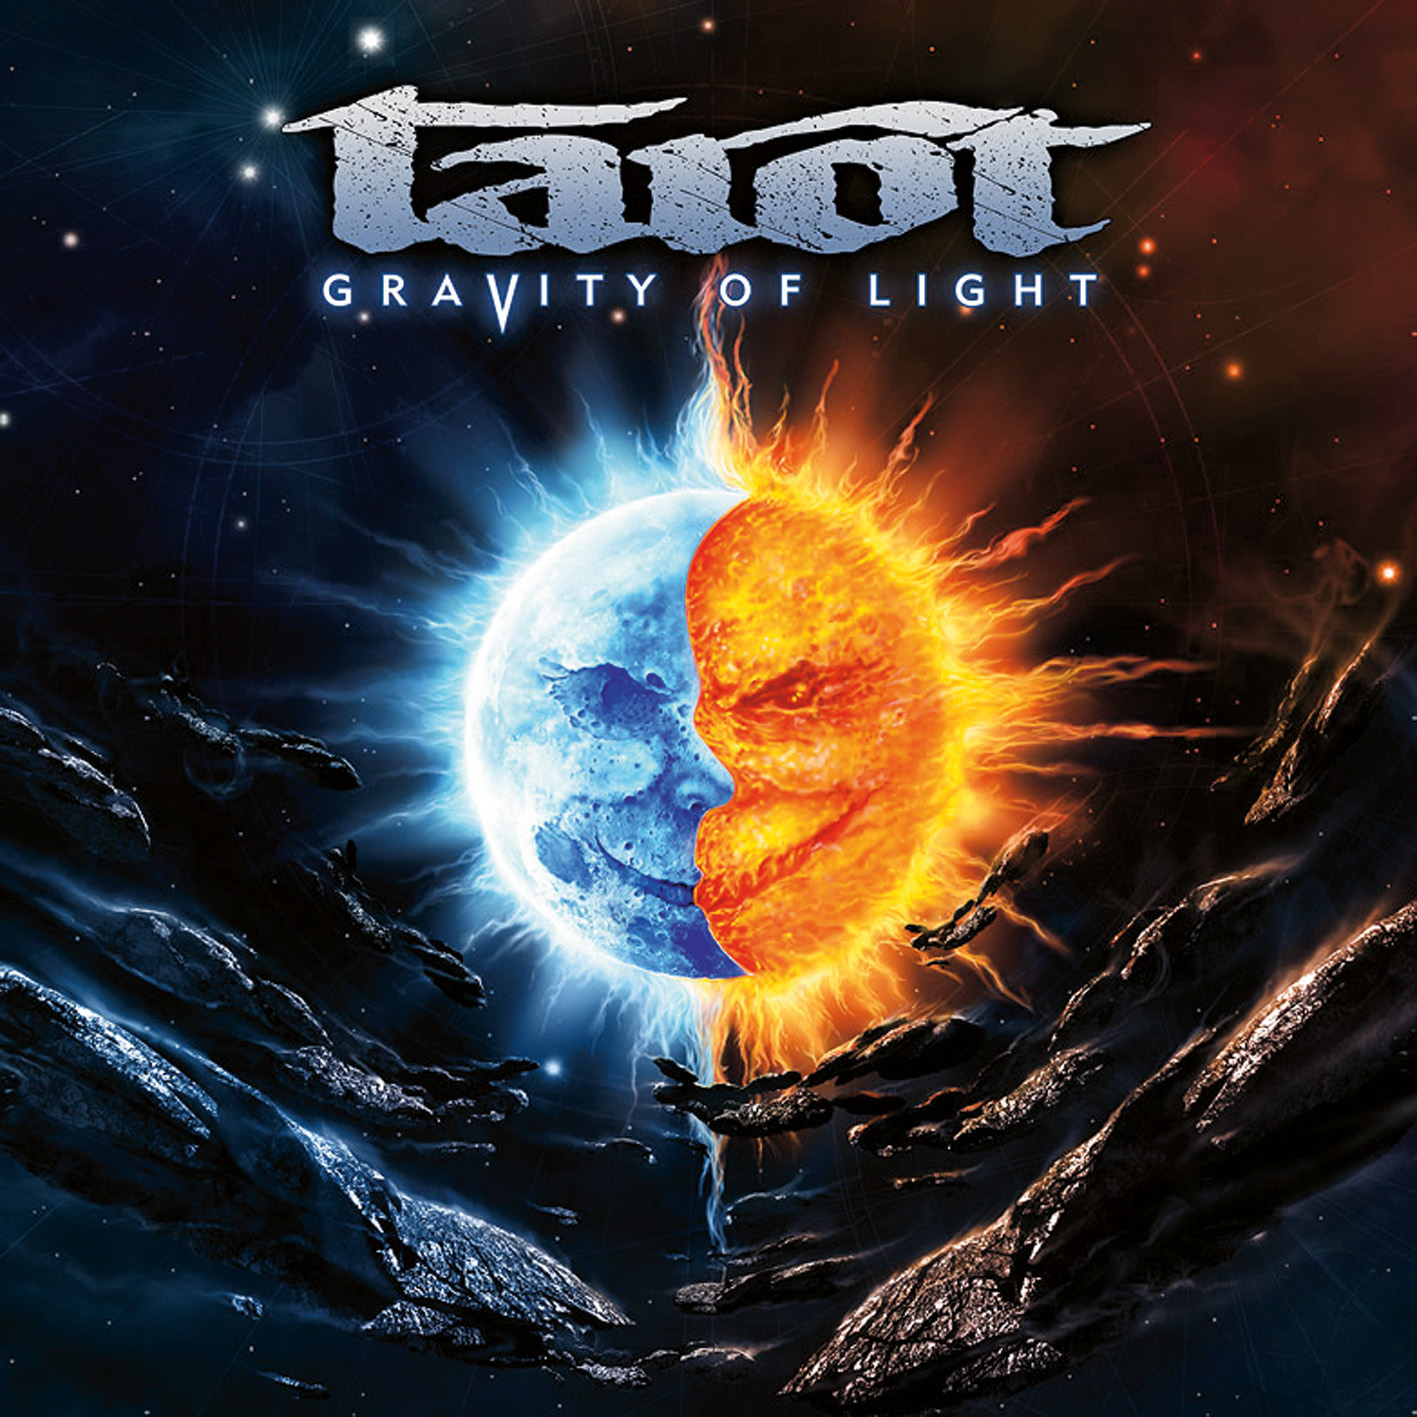 Tarot - Gravity of Lig...